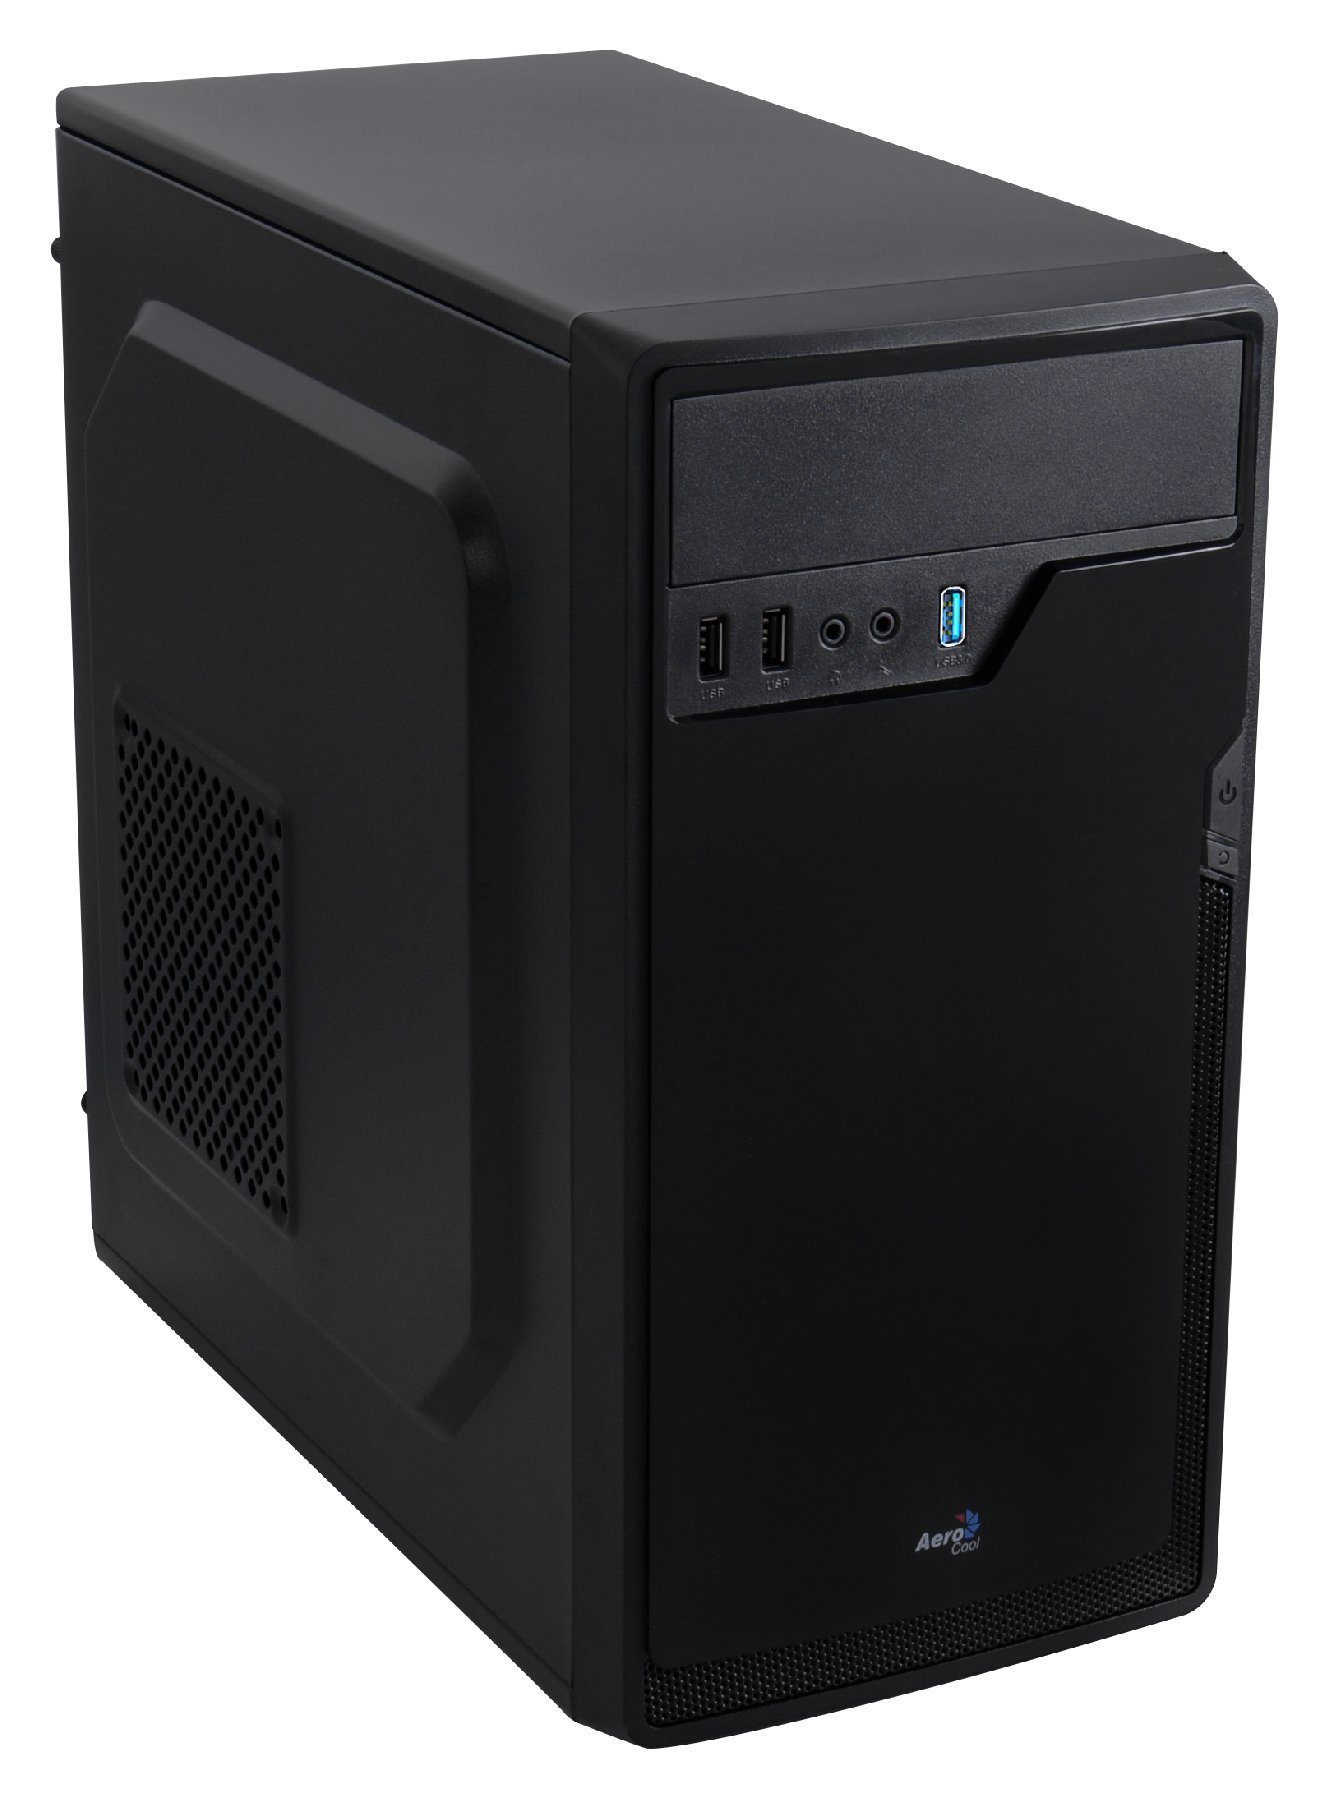 Case mATX - CS-100 Advance - ACCS-PC05019.11